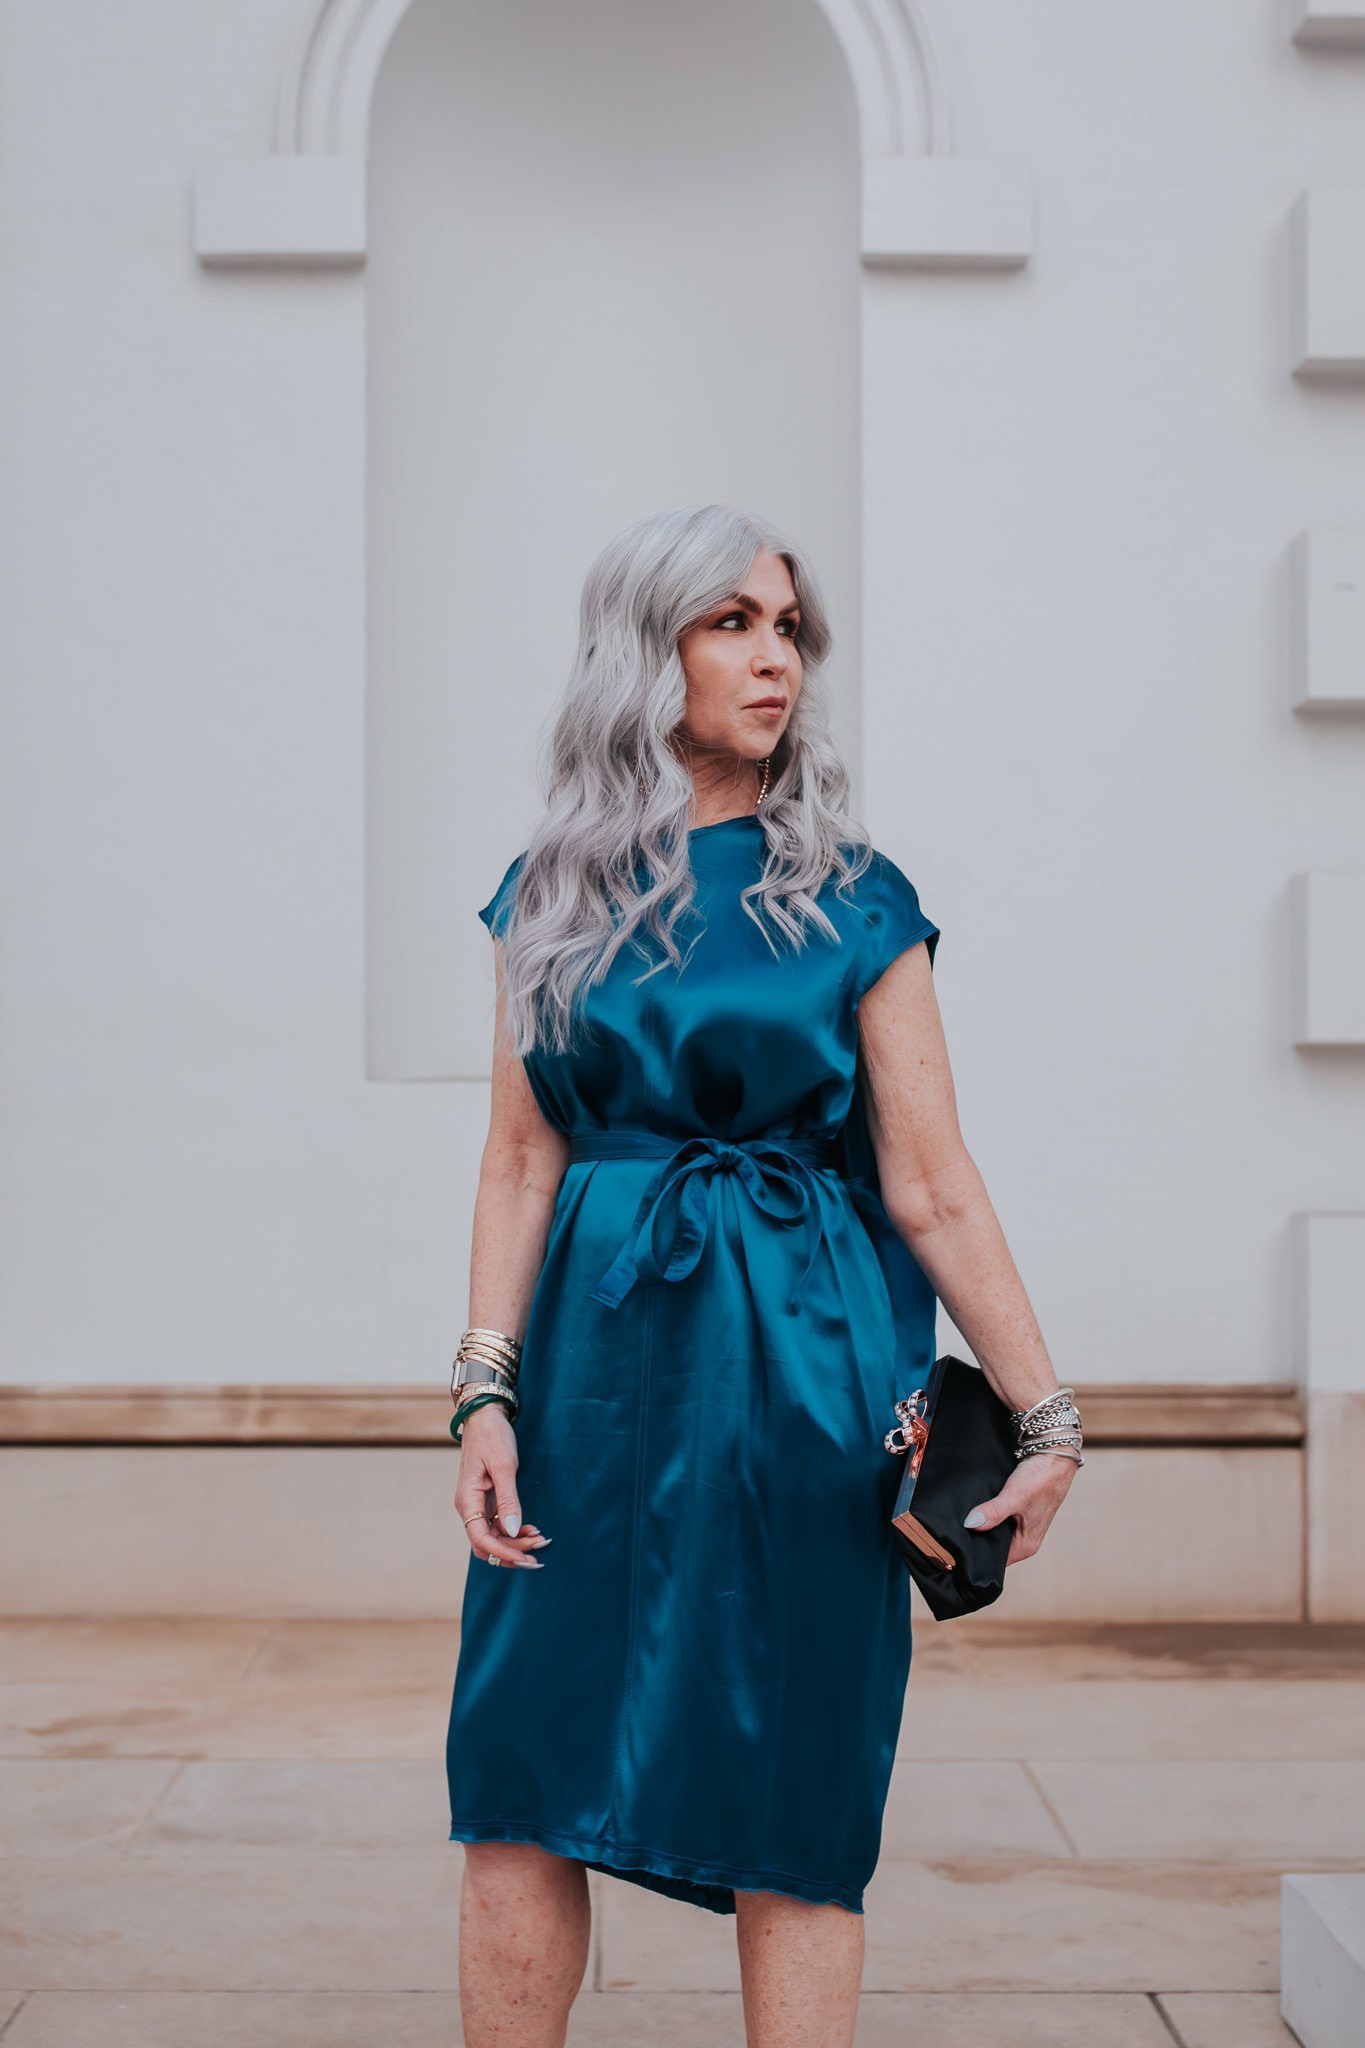 lisa in a blue silk below the knee formal wedding guest dress with dangling colorful earrings and creme pumps, and a black clutch